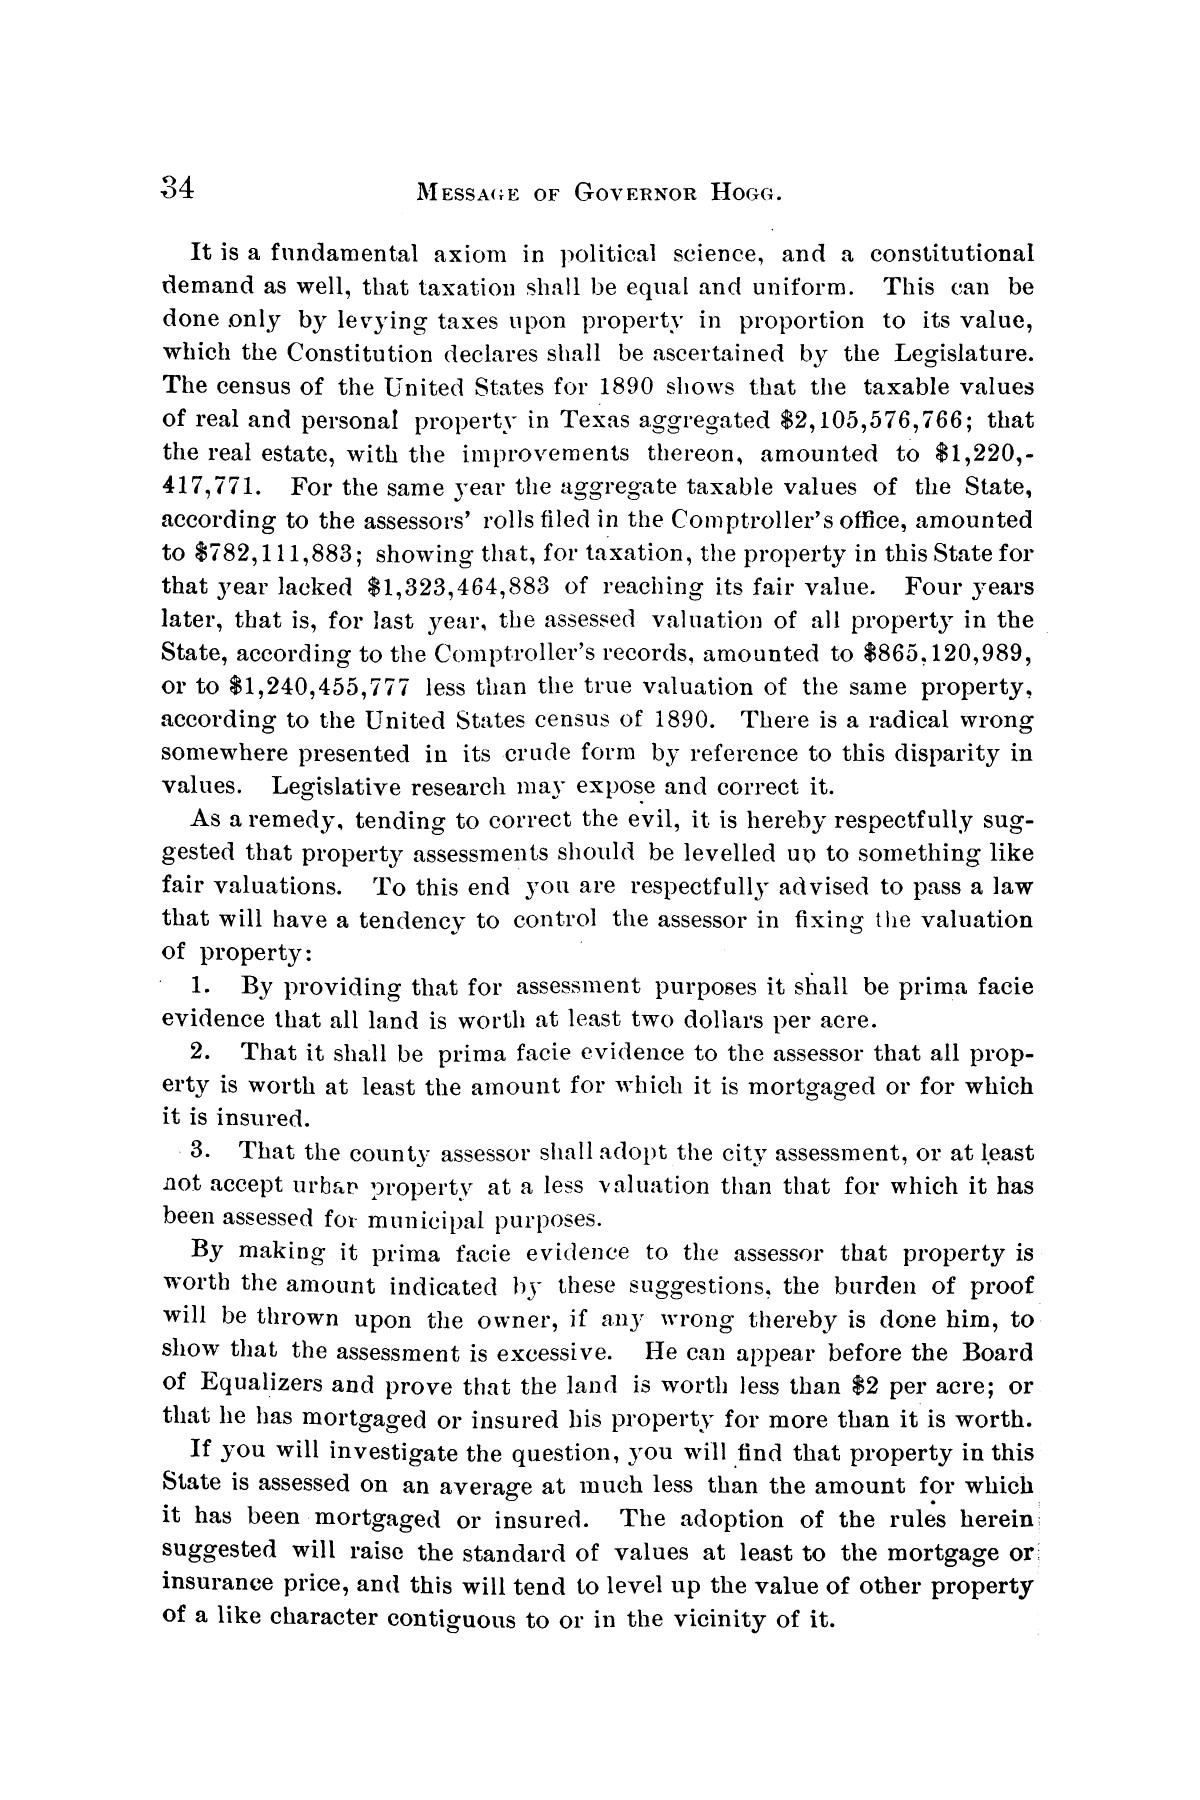 Message of Governor James S. Hogg to the twenty-fourth legislature of Texas                                                                                                      [Sequence #]: 34 of 48